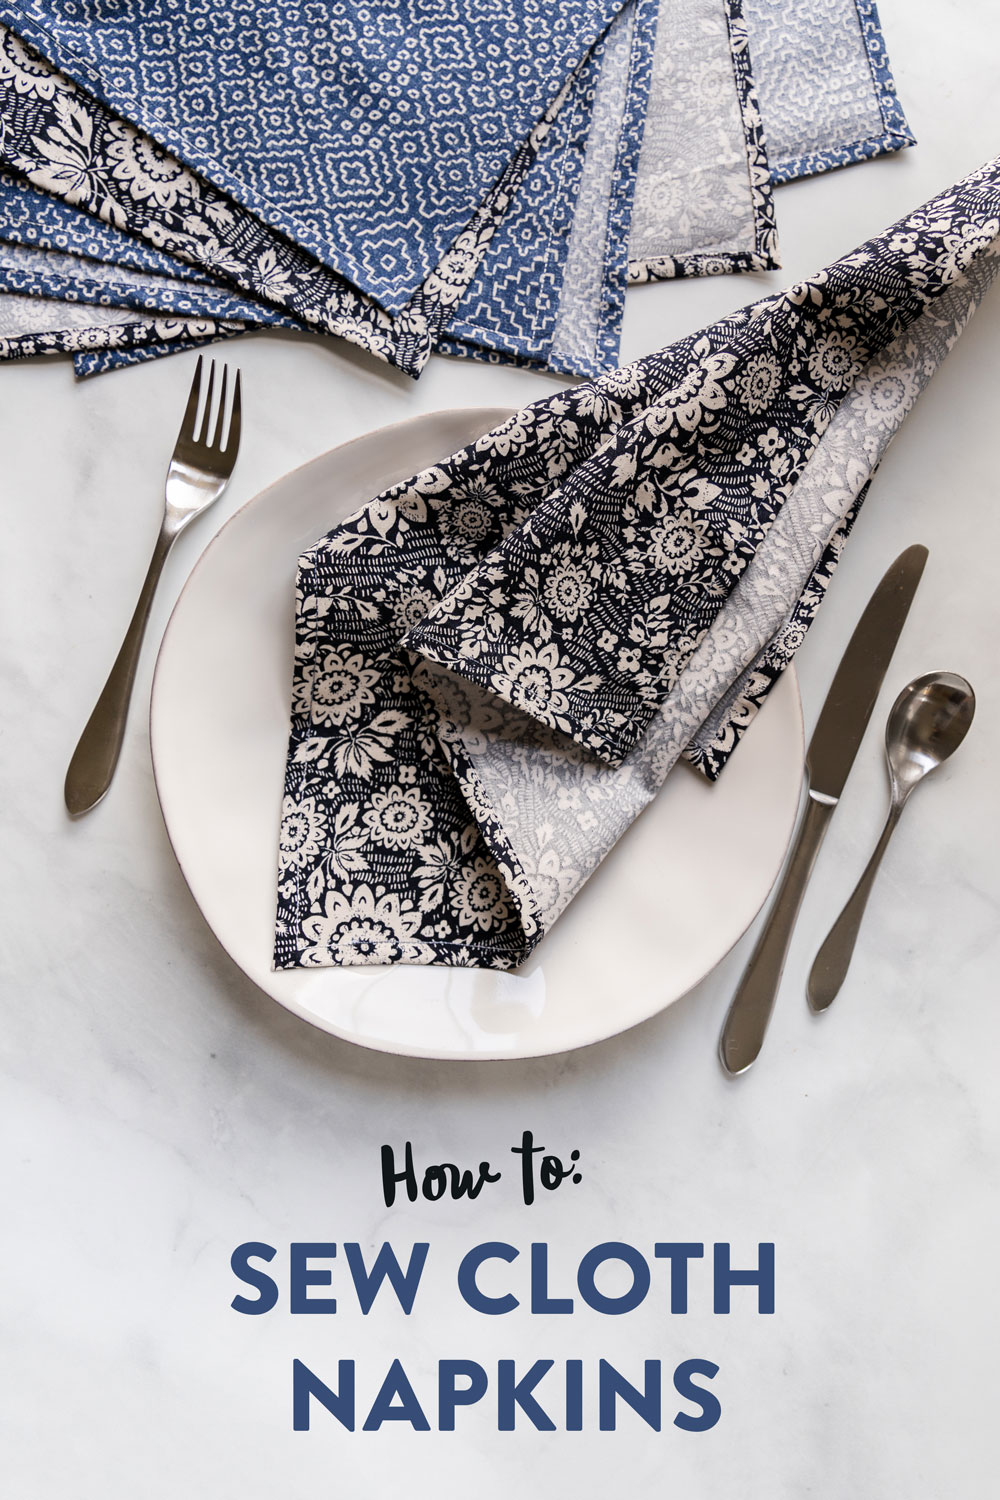 Learn how to sew a napkin in this beginner-friendly DIY cloth napkins tutorial. This fat quarter friendly sewing tutorial is incredibly fast and easy! suzyquilts.com #napkinstutorial #diysewing